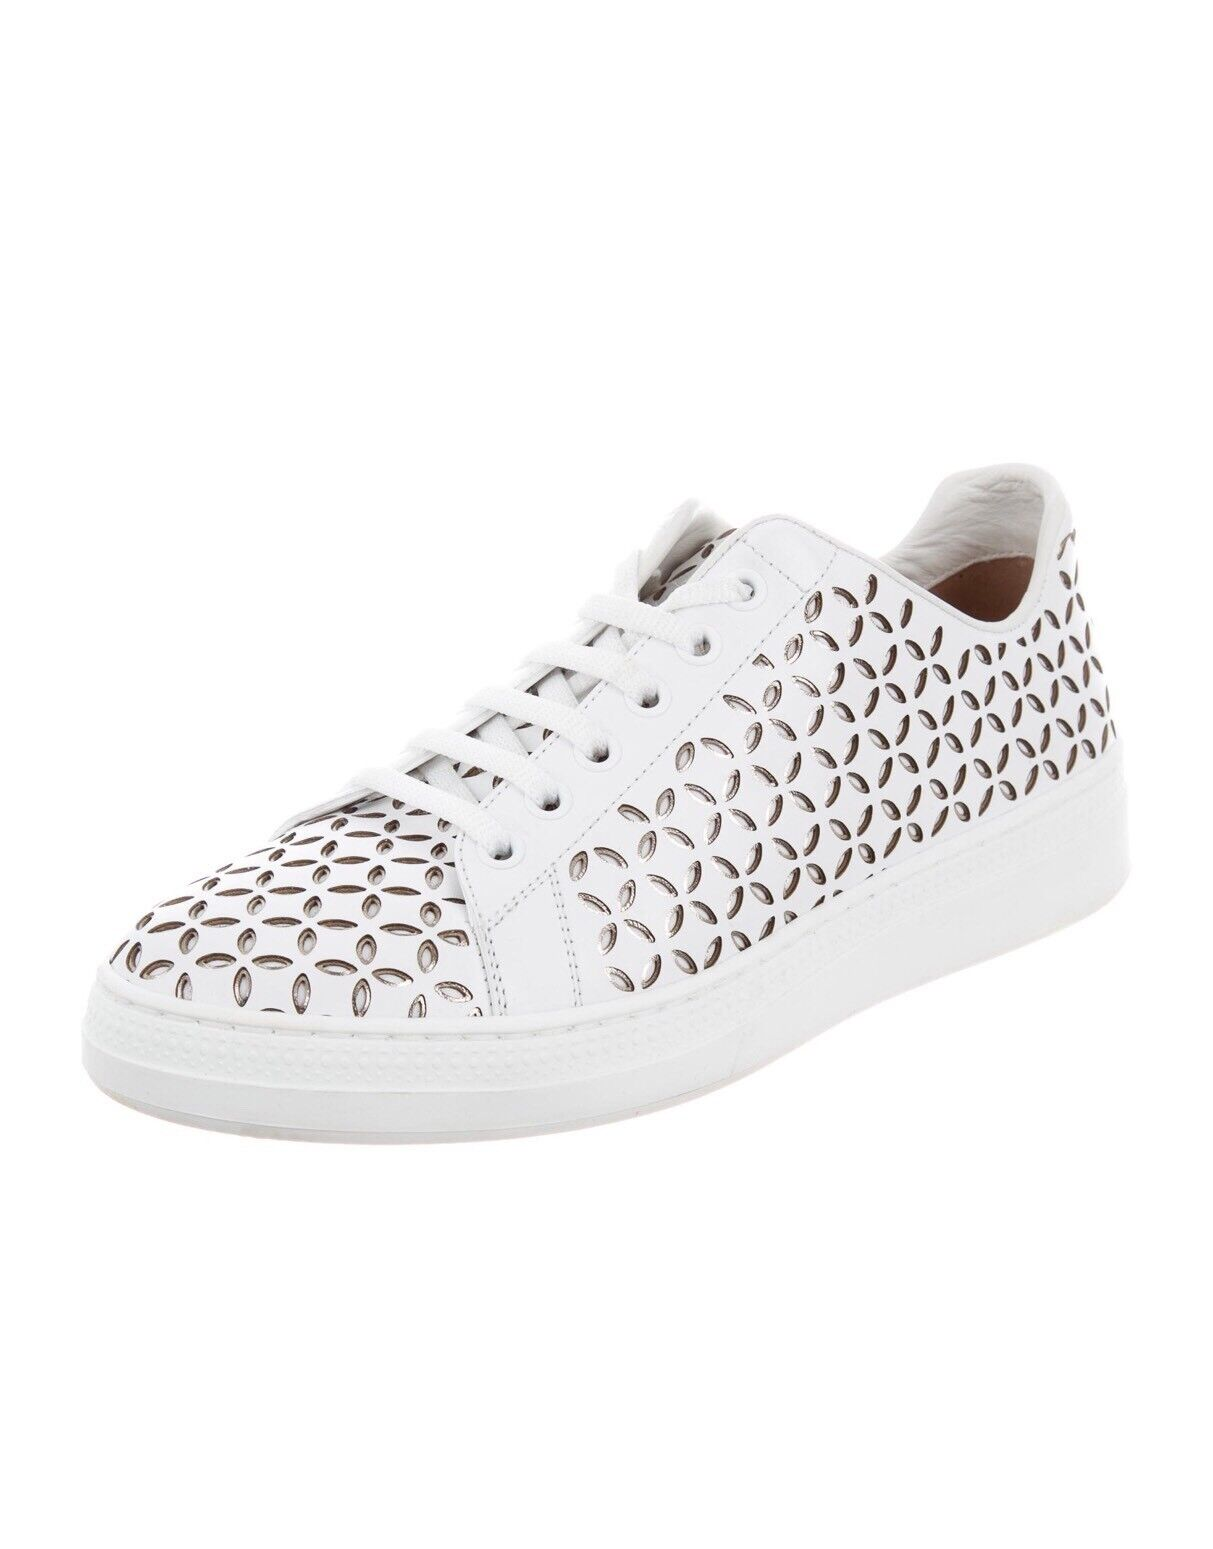 New Alaia White Leather Flower-Print Laser Cut Low-Top Sneakers 40/10US $995.00